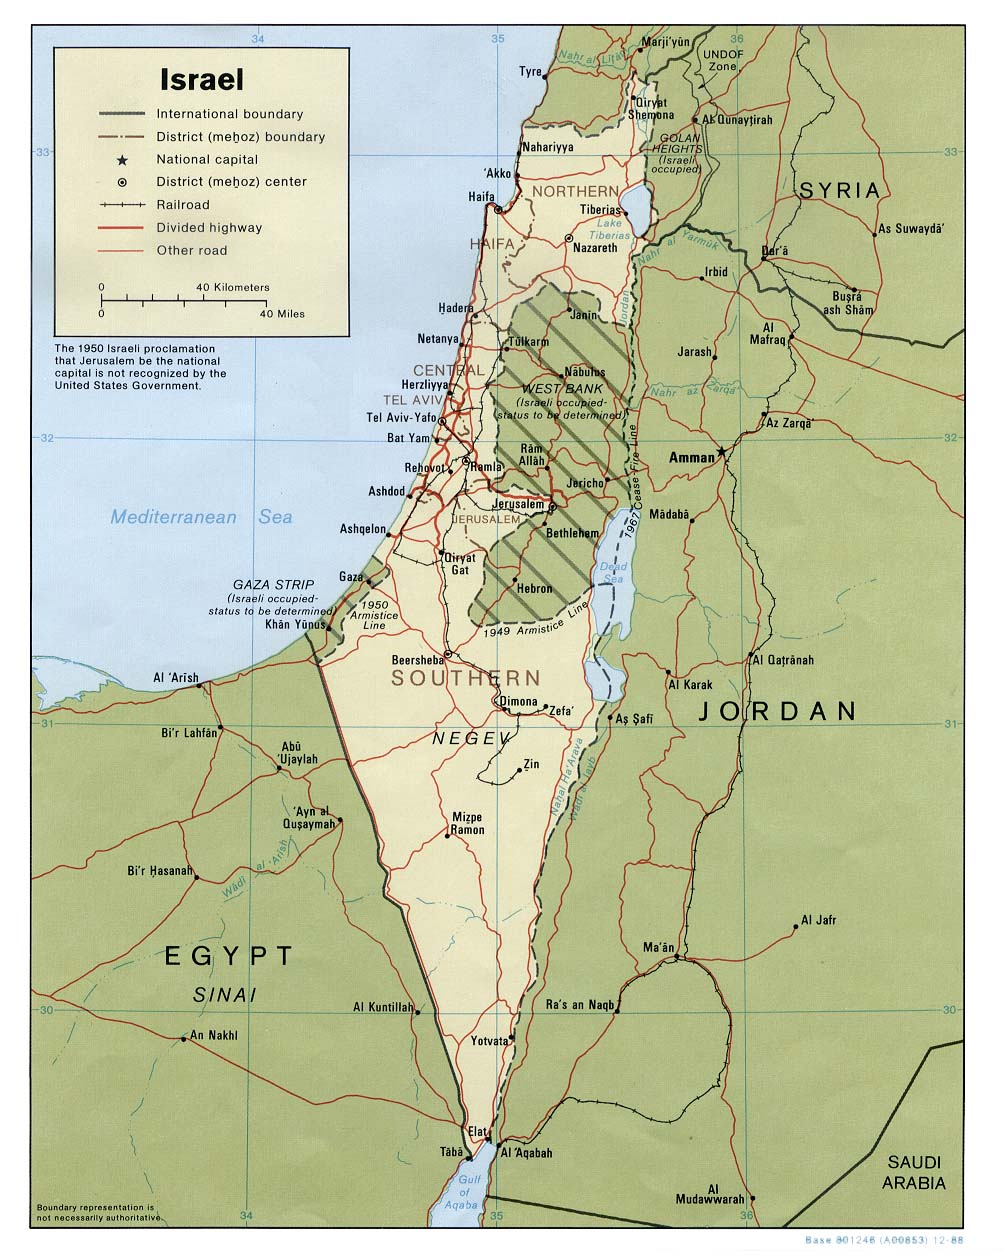 Israel topographic maps, satellite imagery, drgs, dems, vectors.